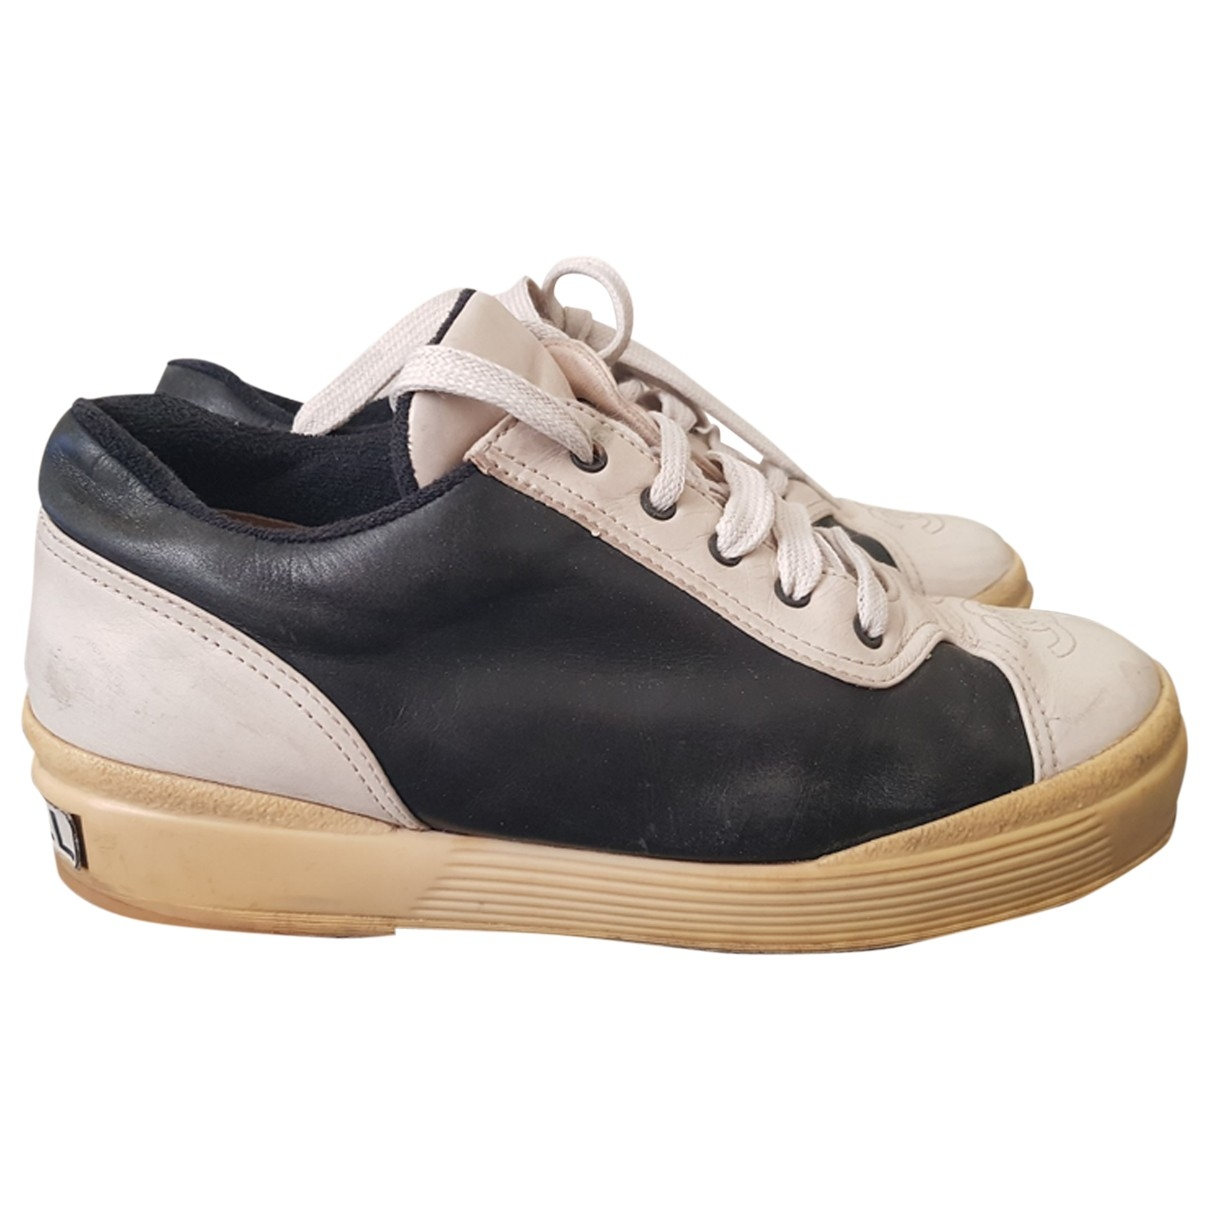 Chanel \N White Leather Trainers for Women 38.5 EU